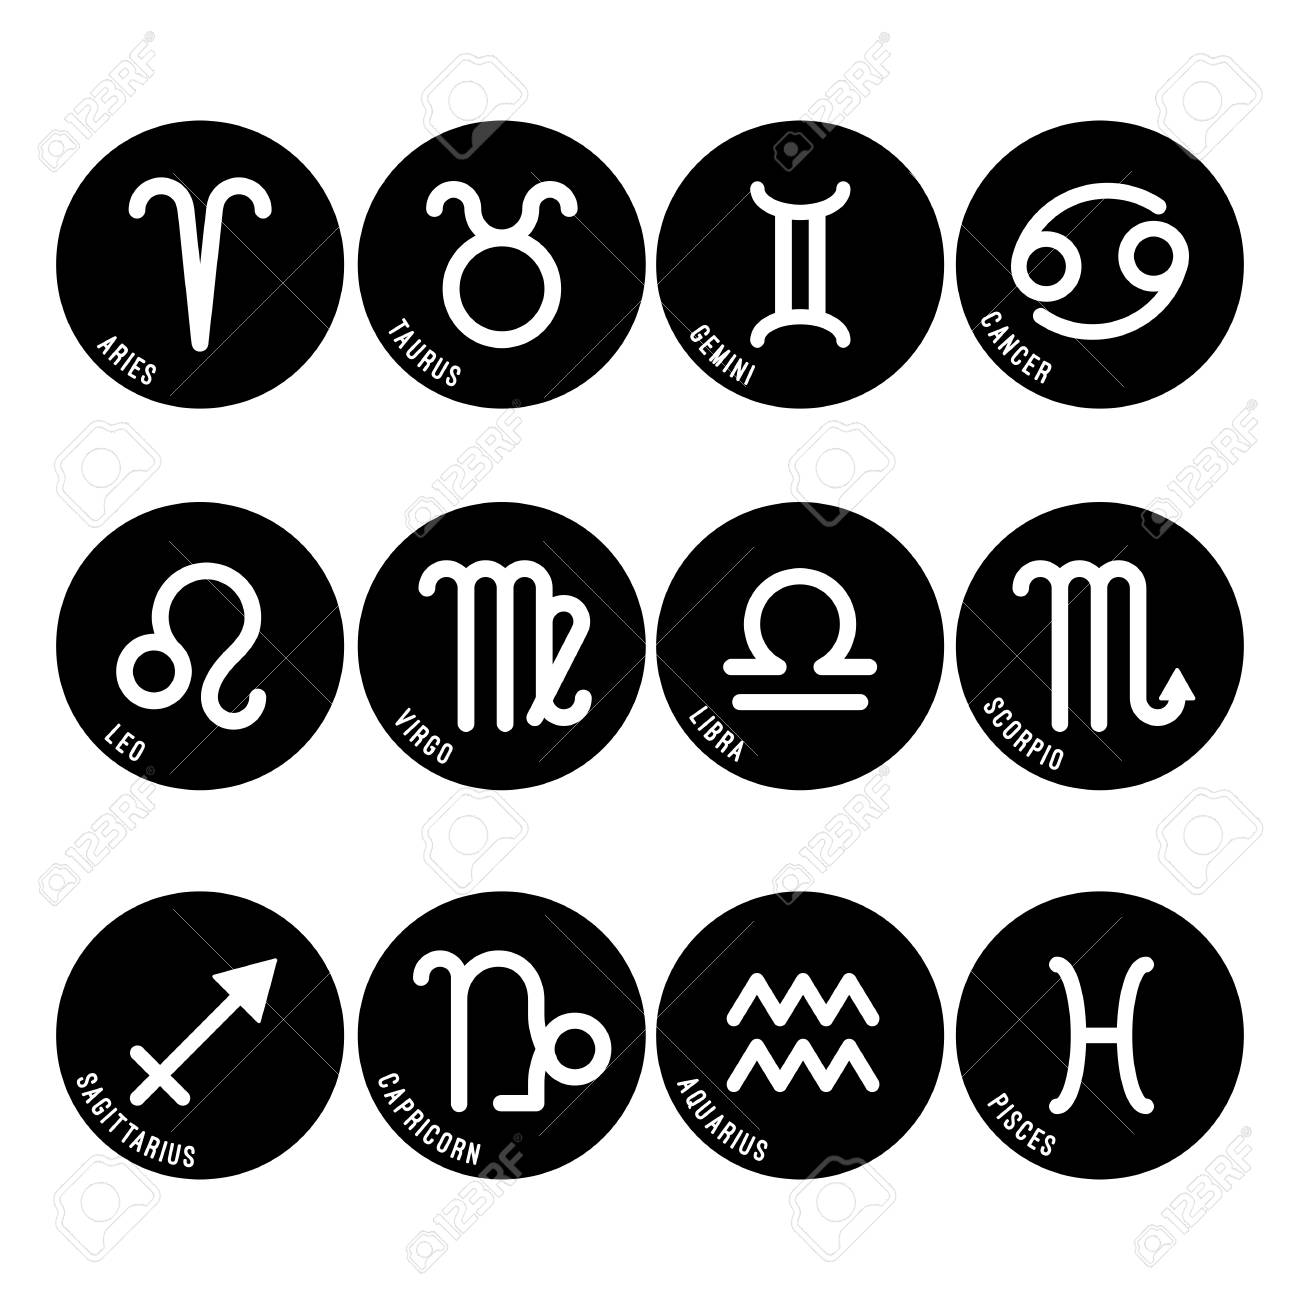 Astrology symbols, zodiac signs vector isolated icons in black